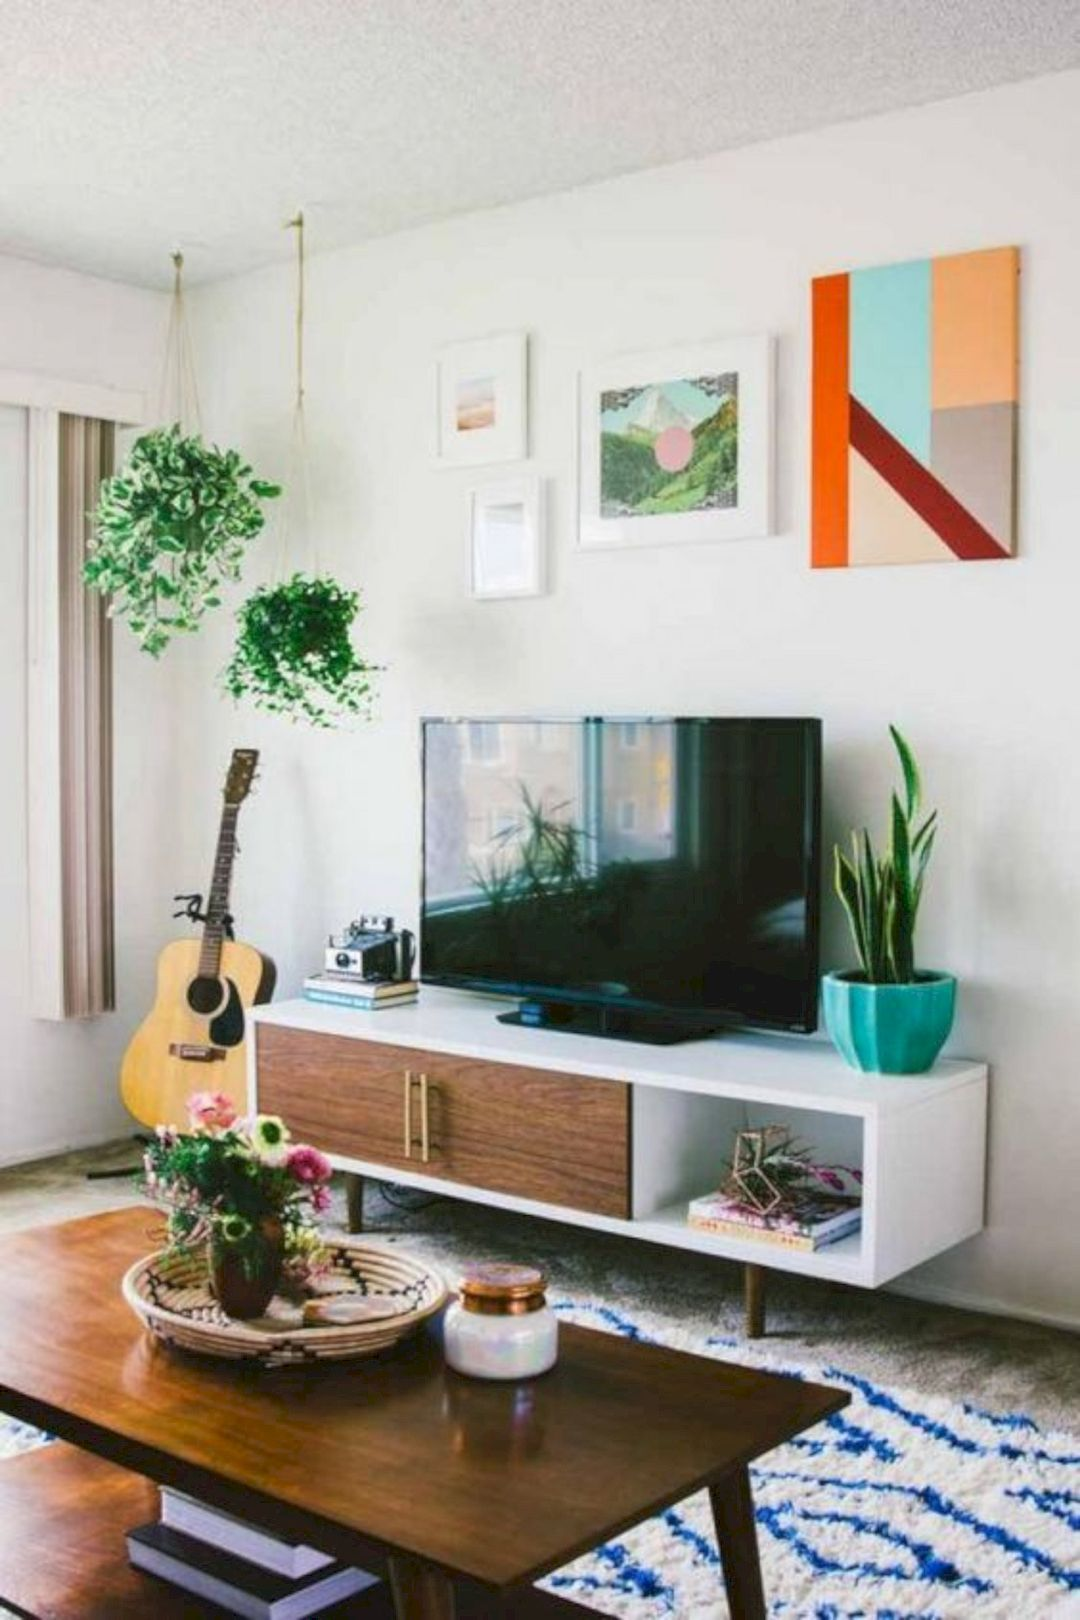 16 Interior Design Ideas for LED TV | TVs, Interiors and House